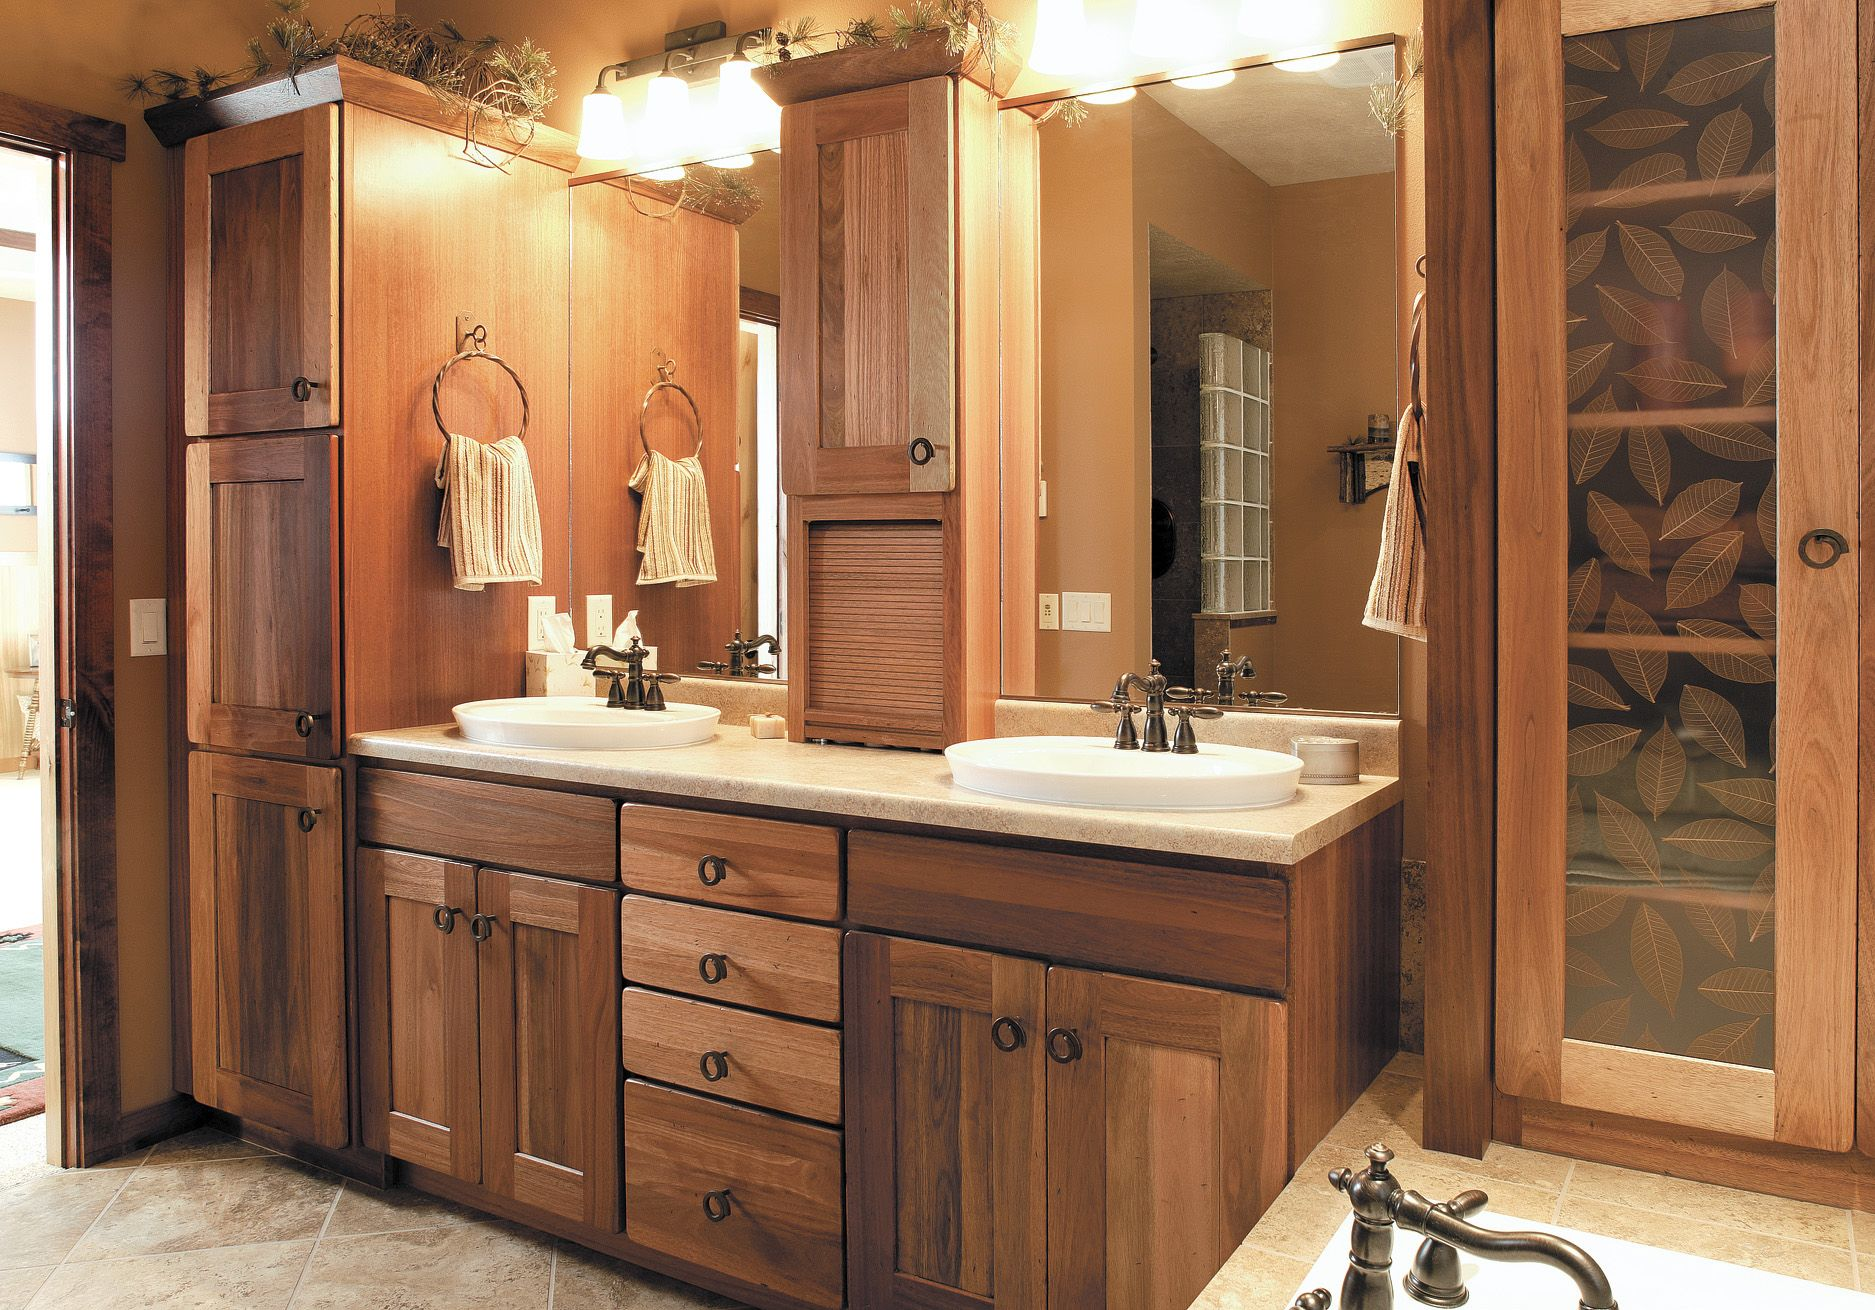 Bathroom Remodeling | Dreamscapes Kitchen and Bath